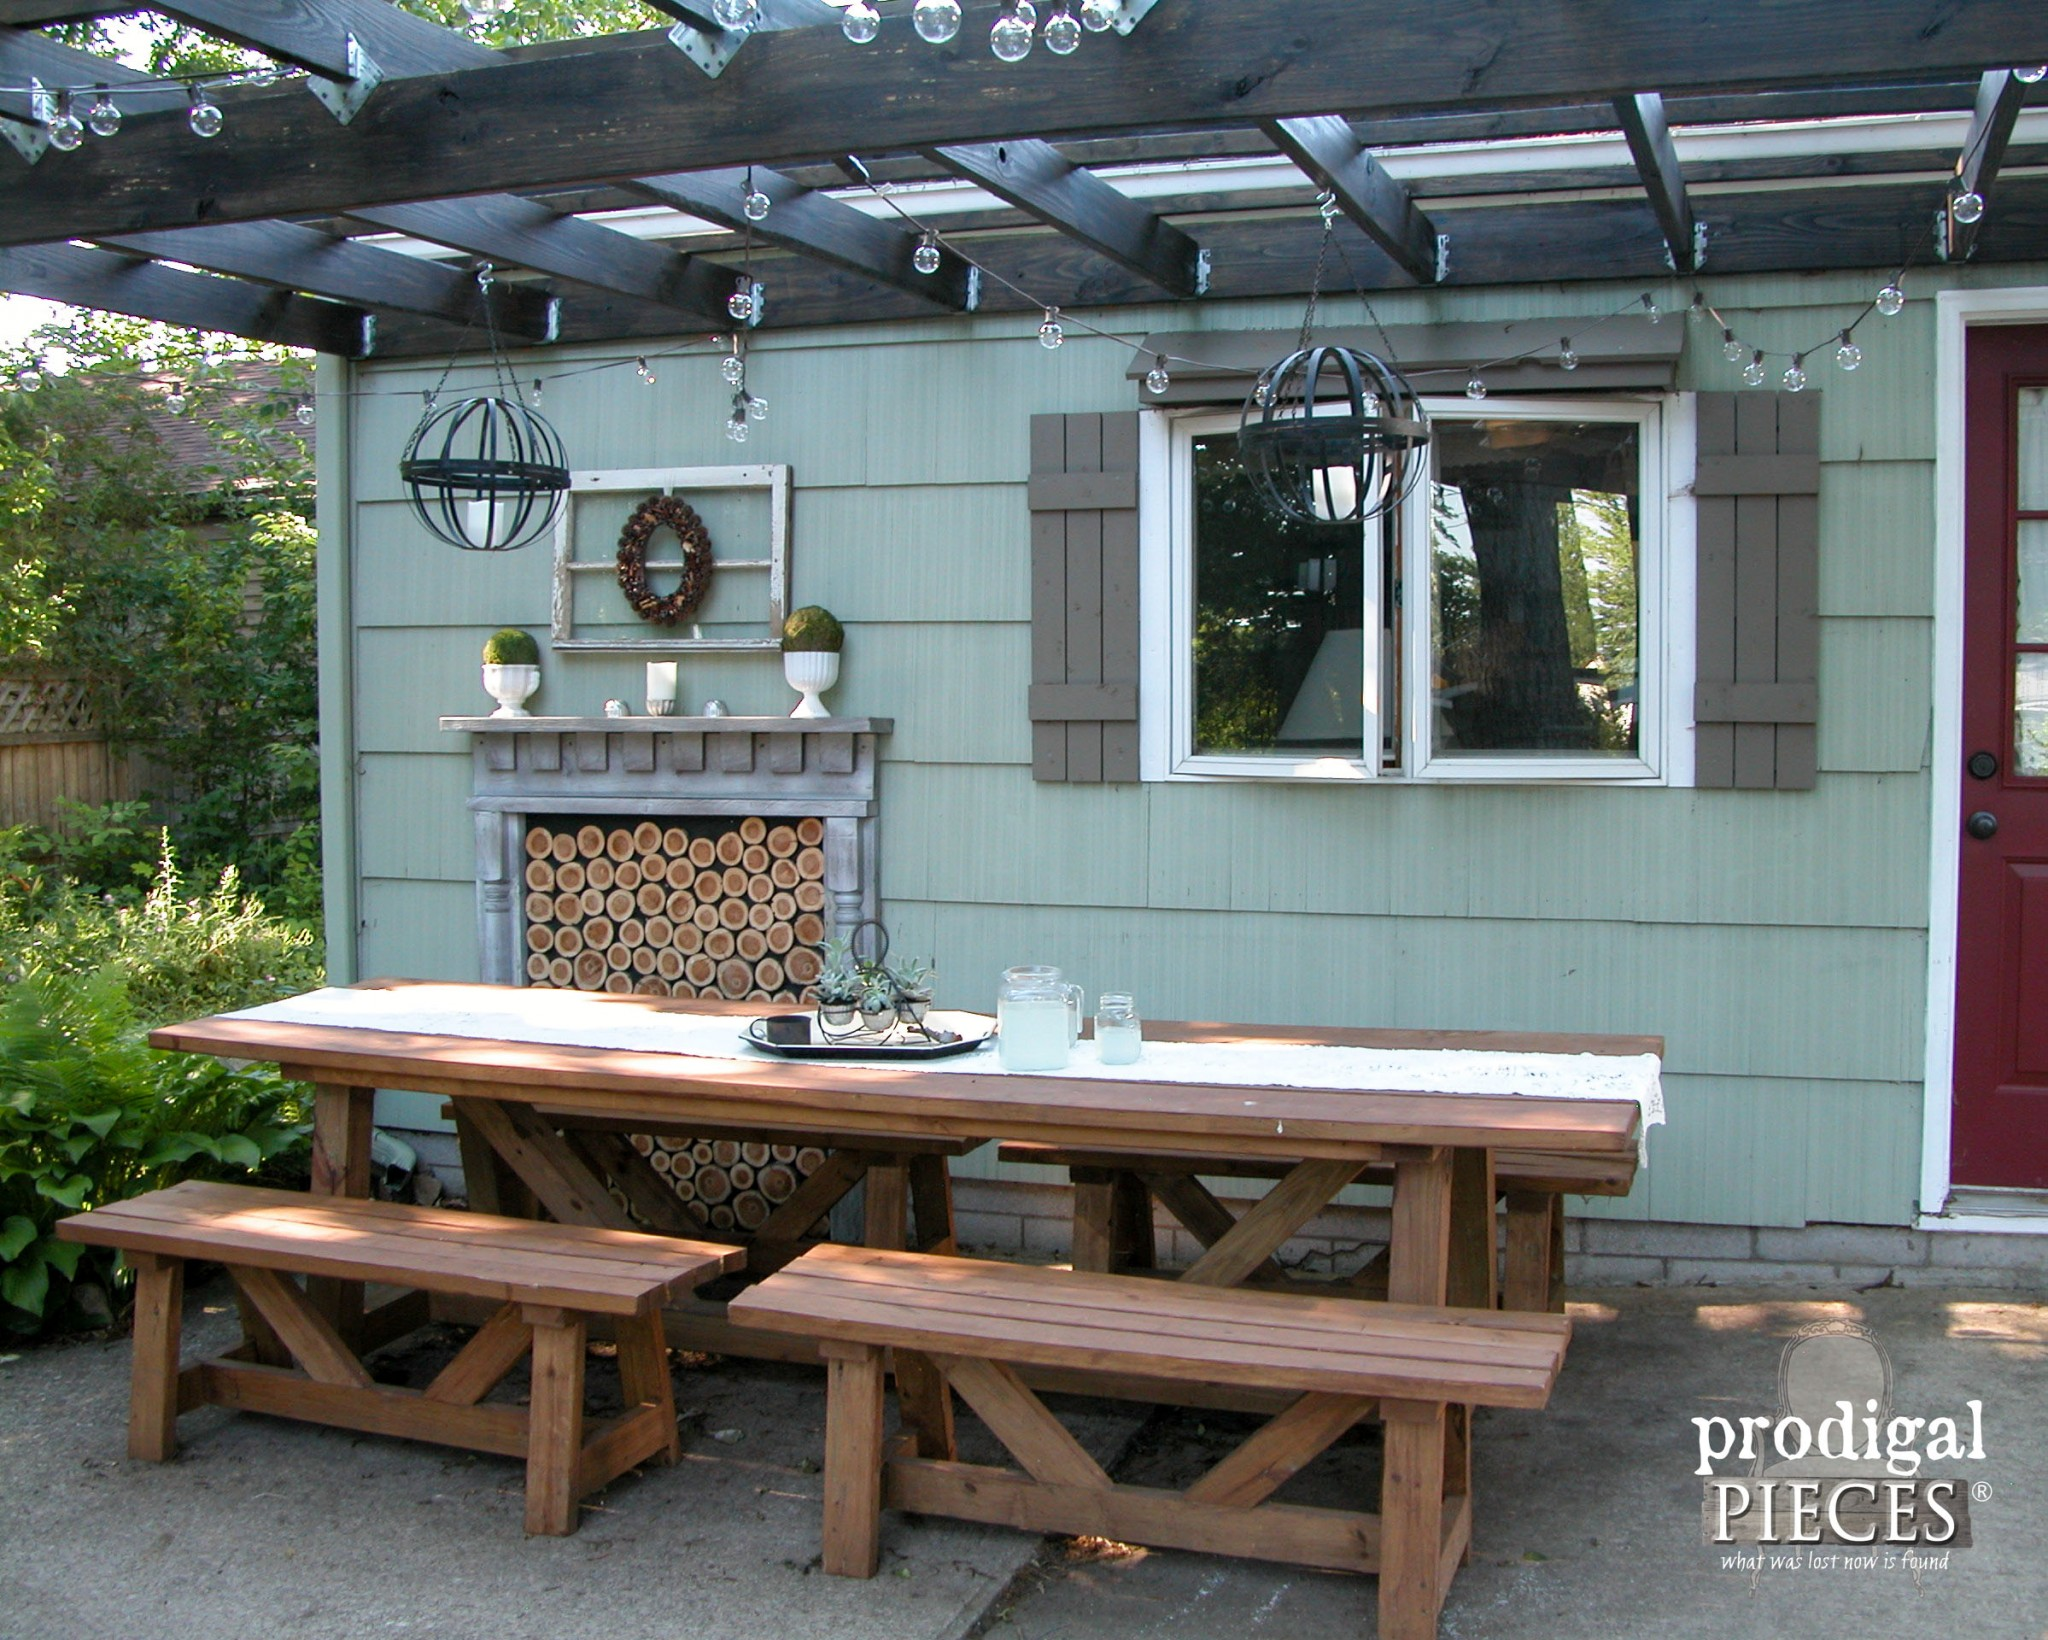 Large Harvest Table with Benches for Patio Dining | Prodigal Pieces | www.prodigalpieces.com